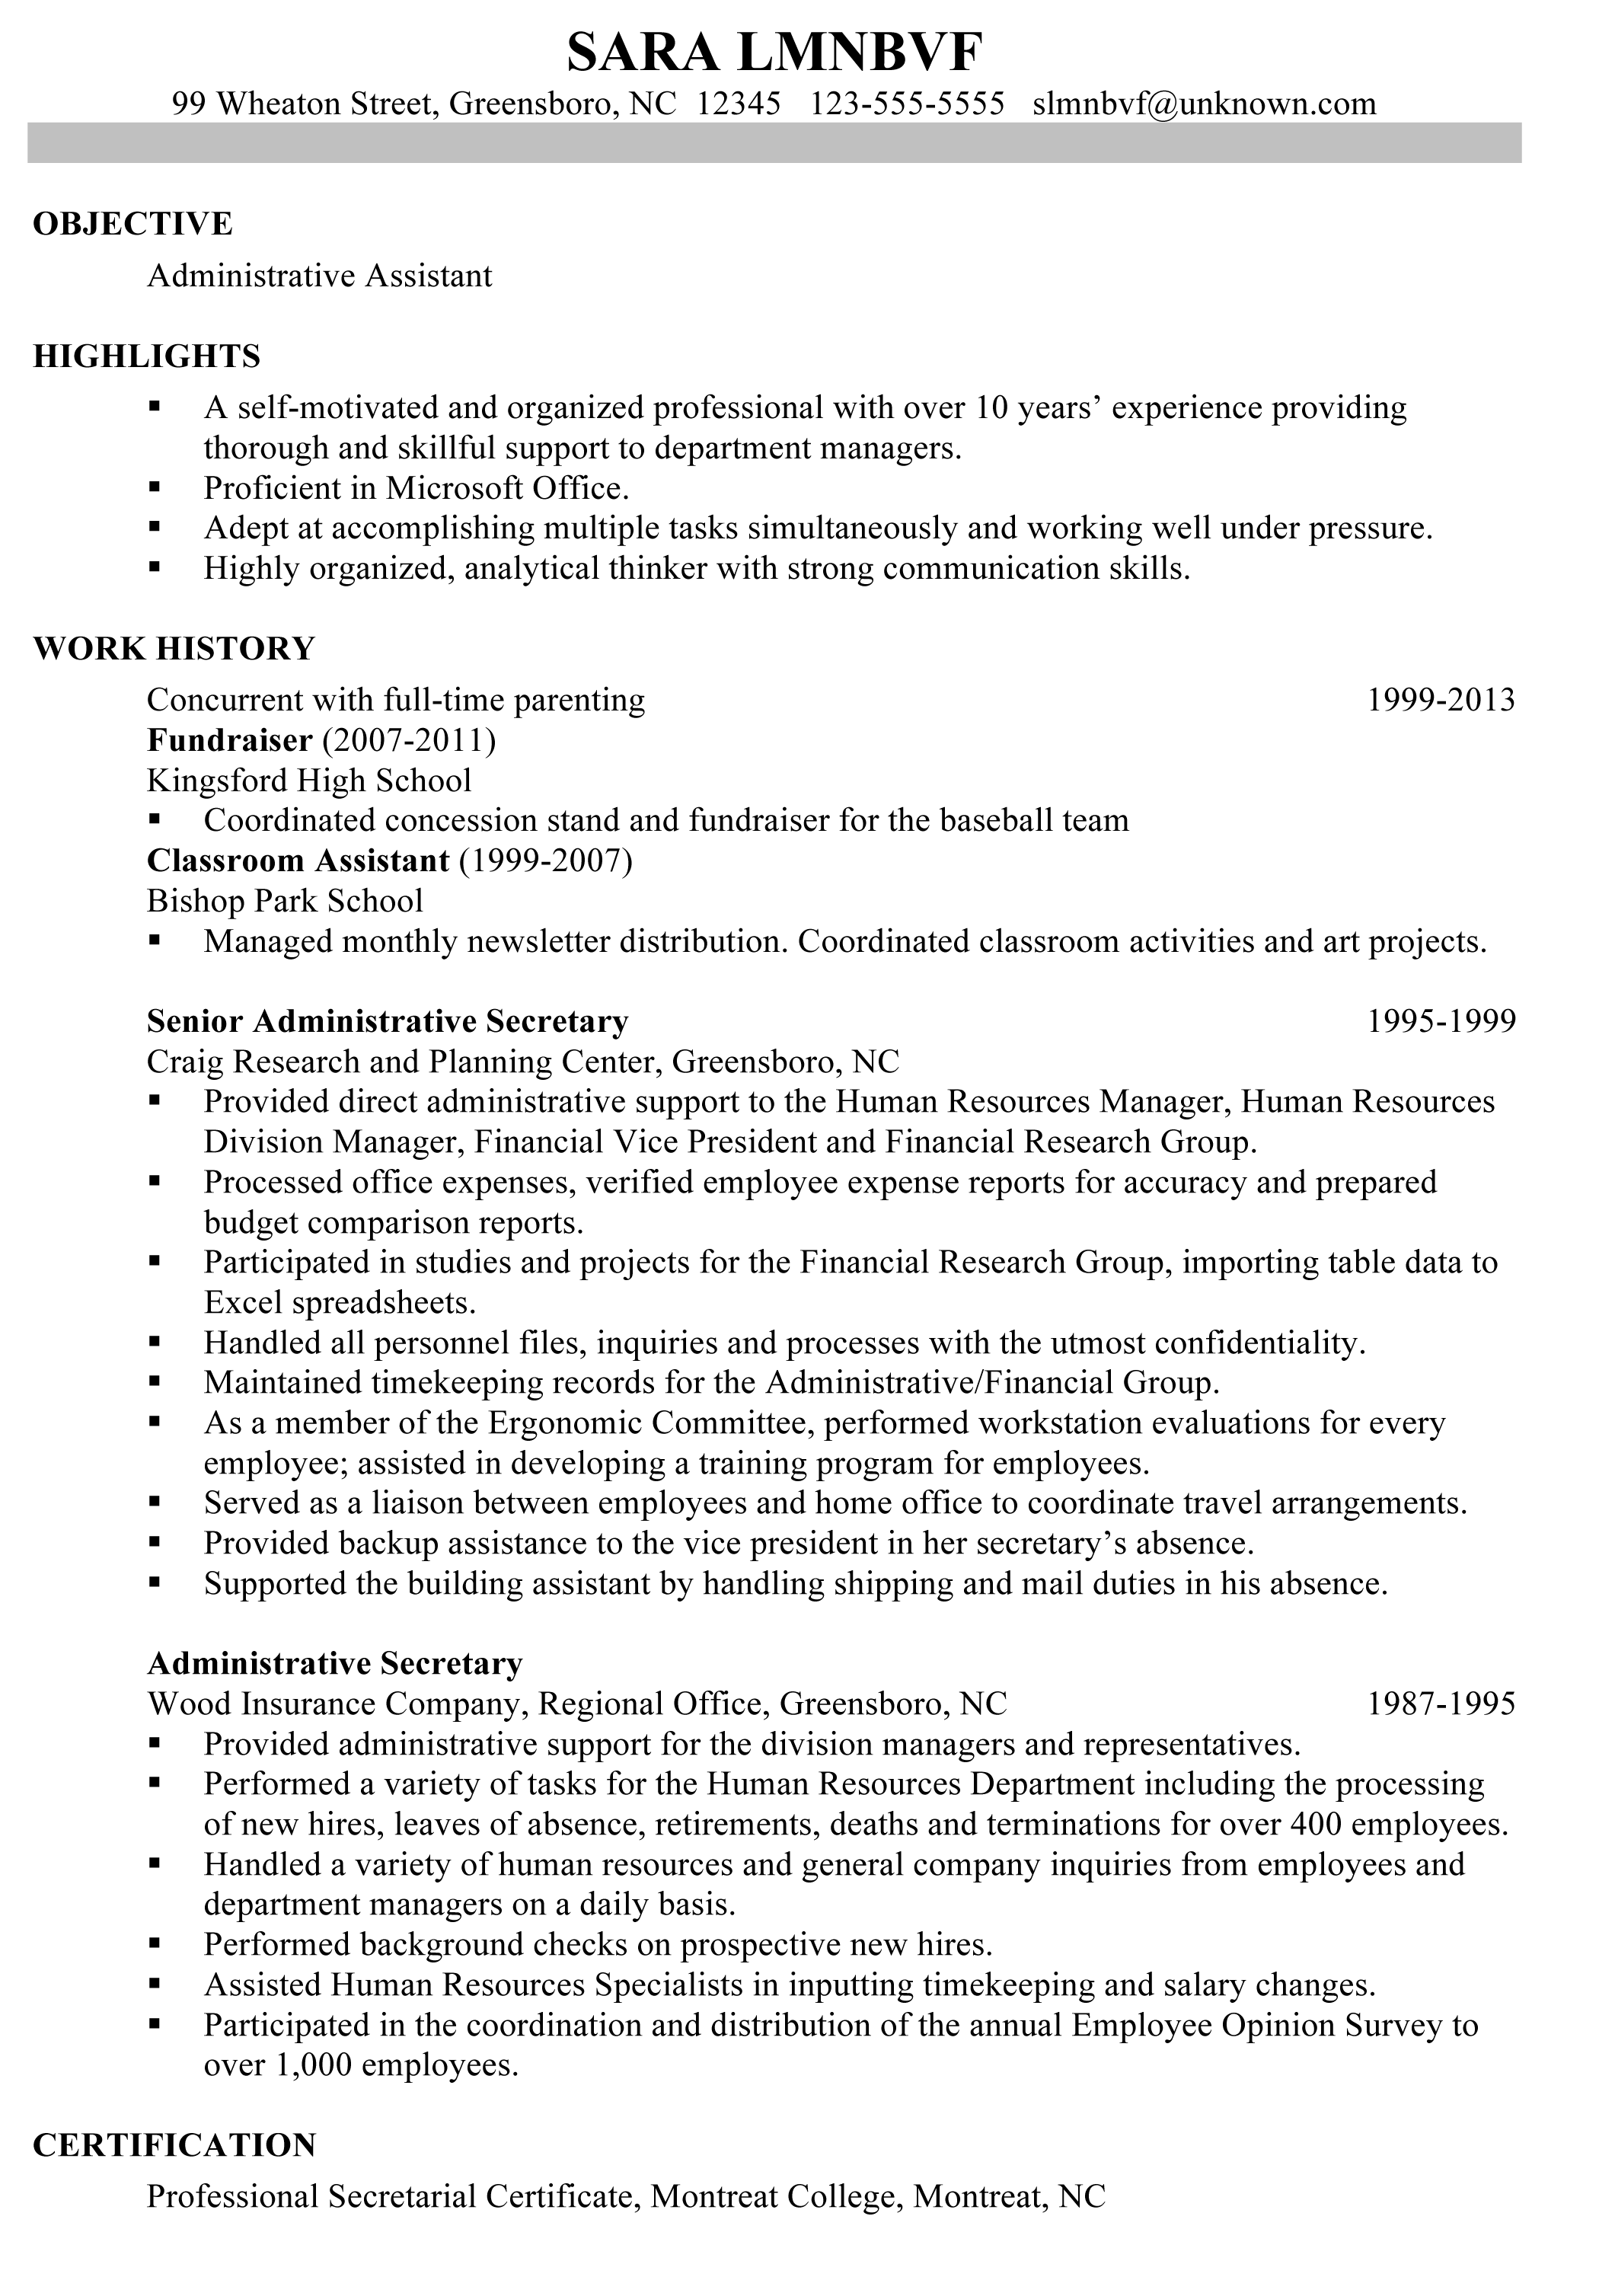 Chronological Resume Sample Administrative Assistant  Resume